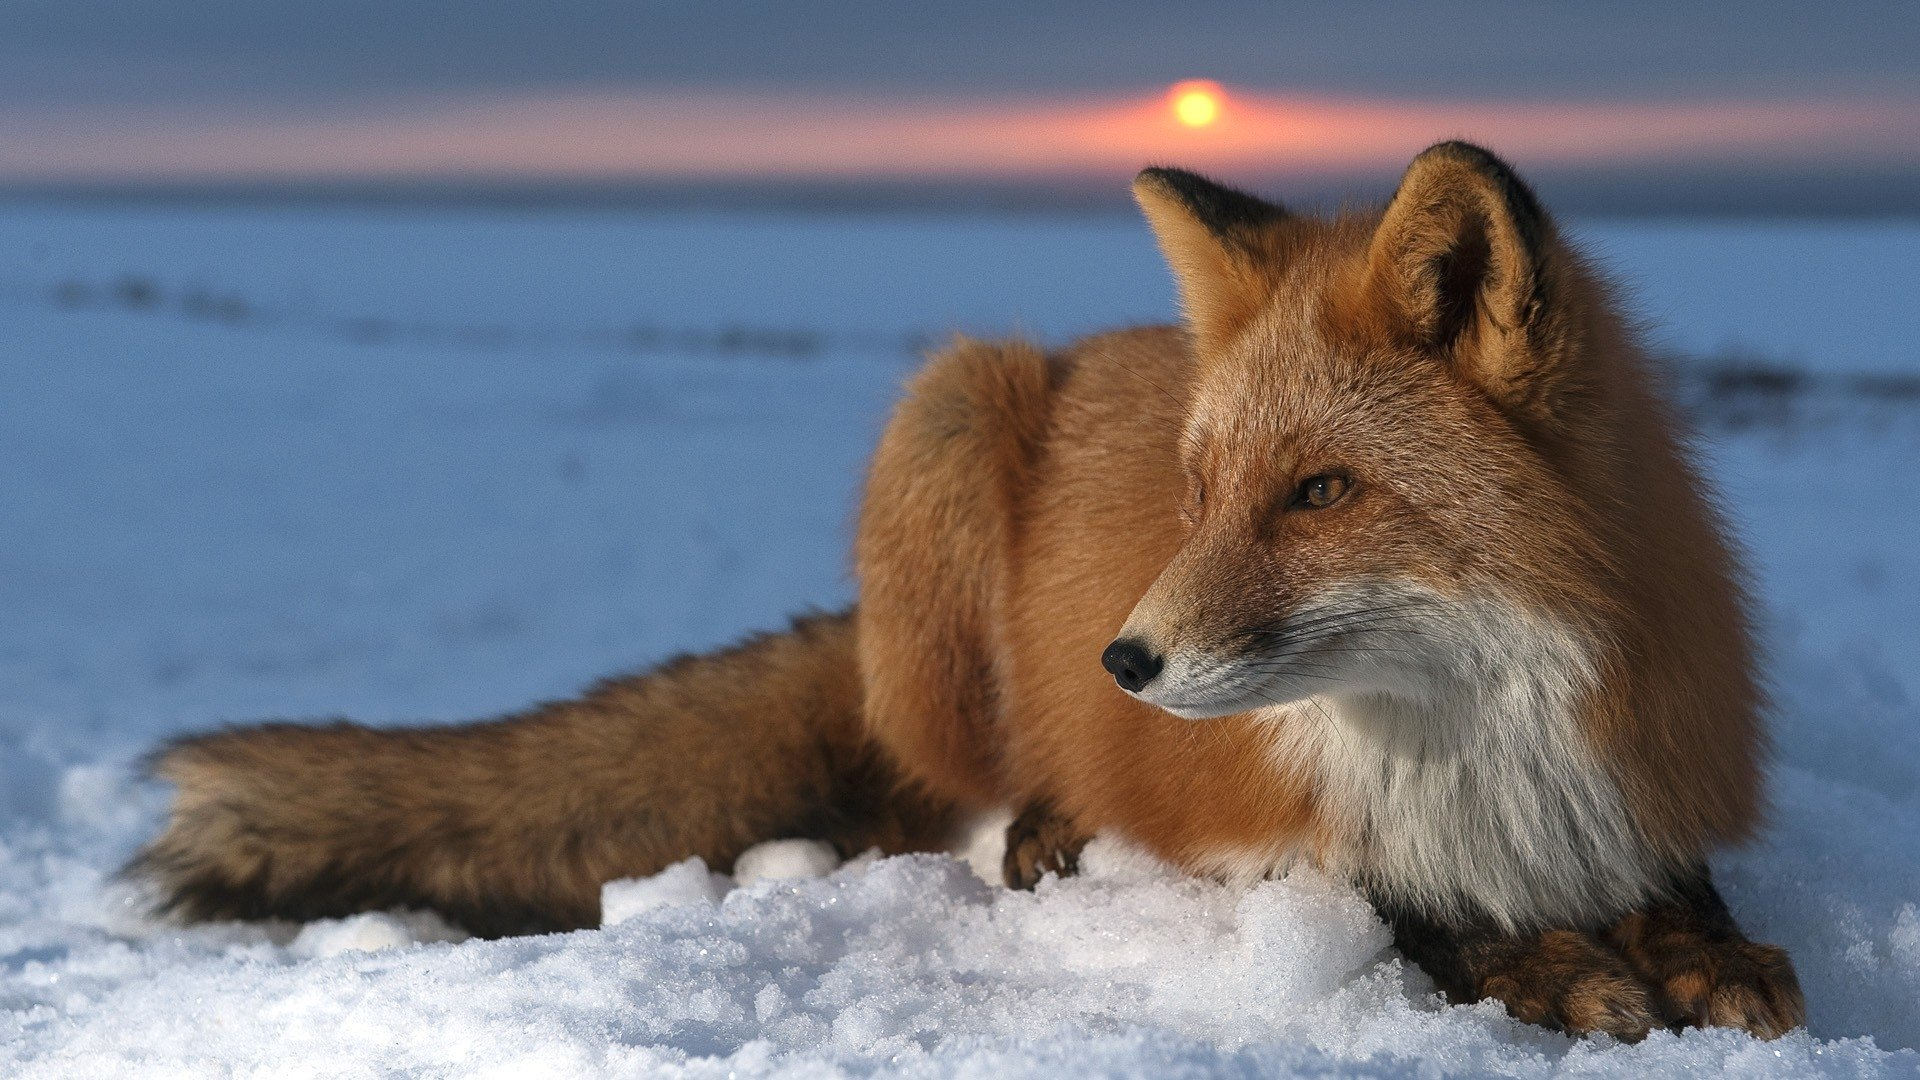 Hd wallpaper down - Animal Fox Sunset Snow Animal Wildlife Wallpaper Download